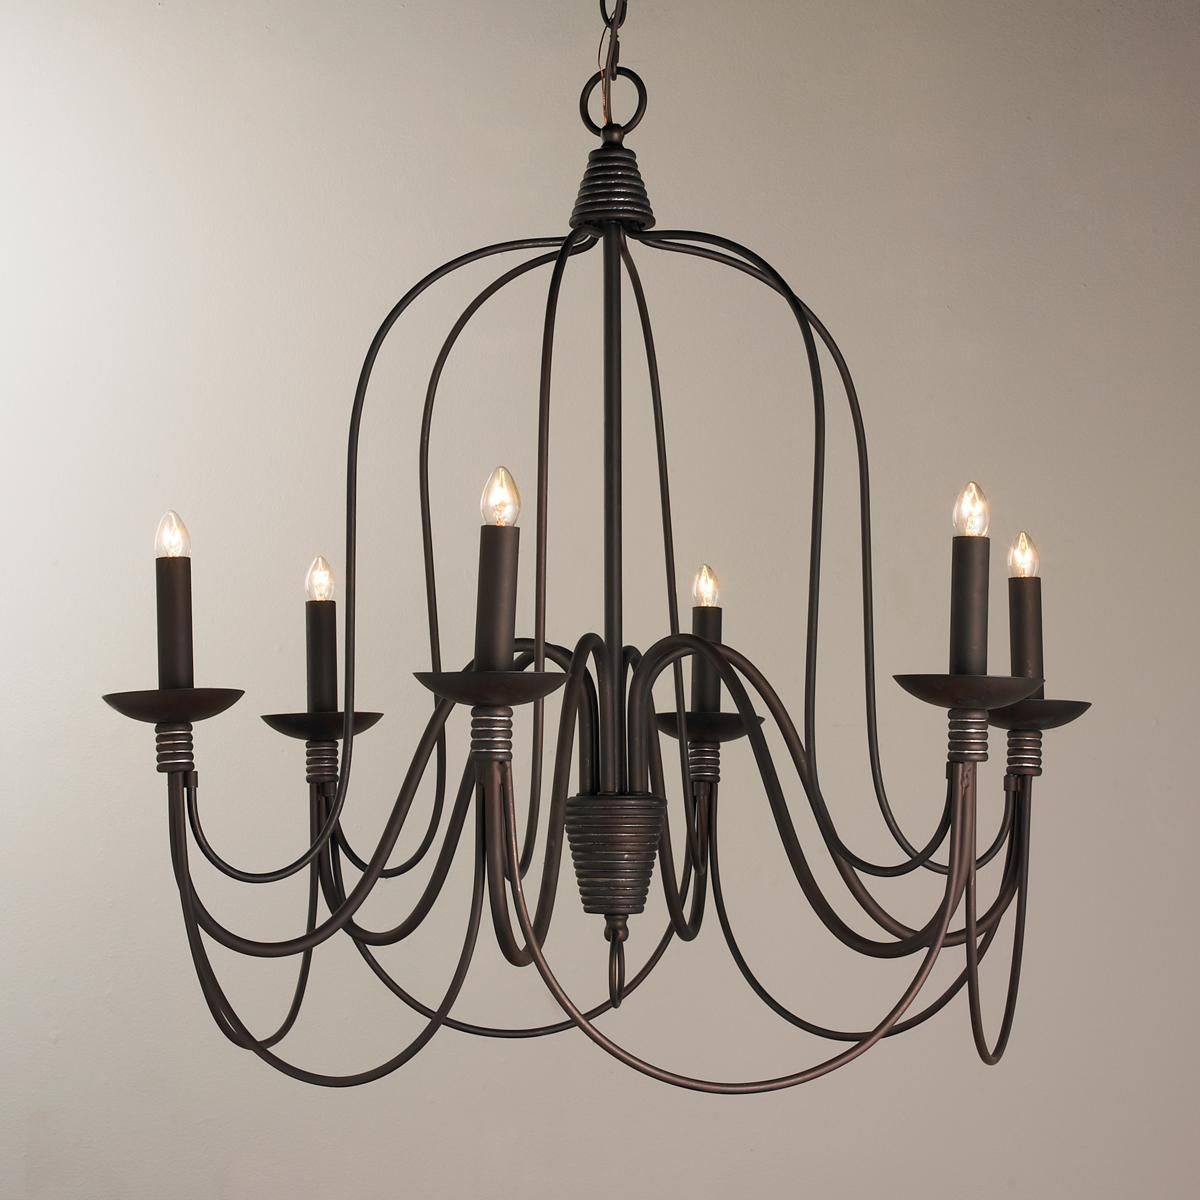 Swag chandelier 6 light chandelier shades swag and chandeliers large bronze swag chandelier shades of light arubaitofo Image collections